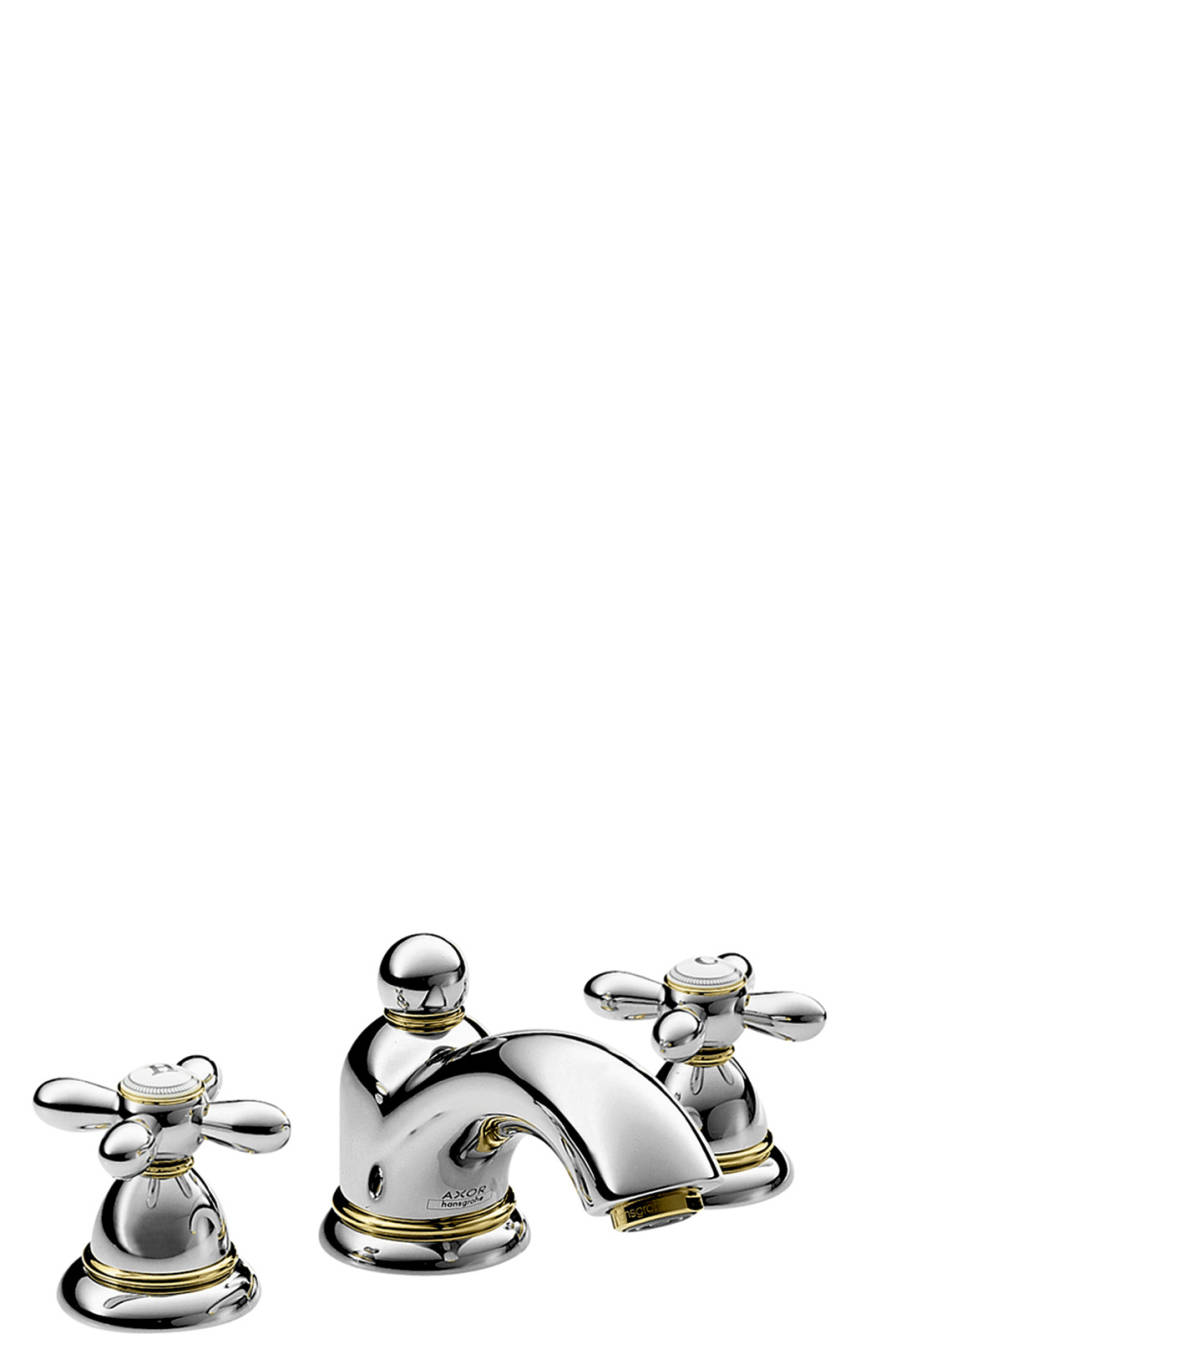 3-hole basin mixer 50 with pop-up waste set and cross handles, Chrome, 17133000